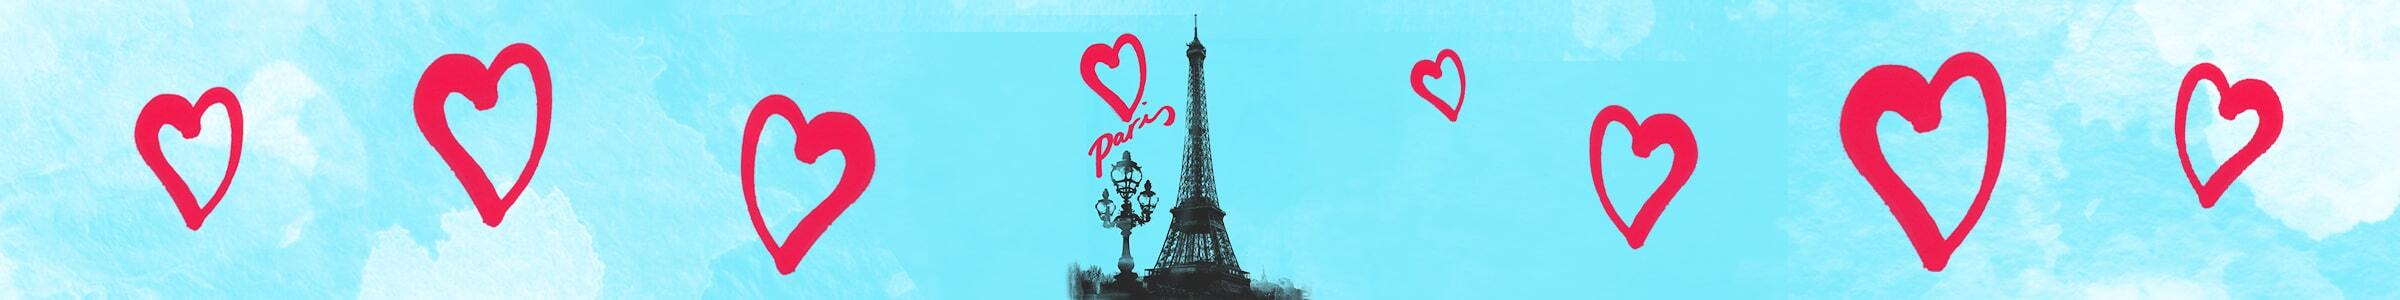 Category_Teaser_Header_Paris_2400x300